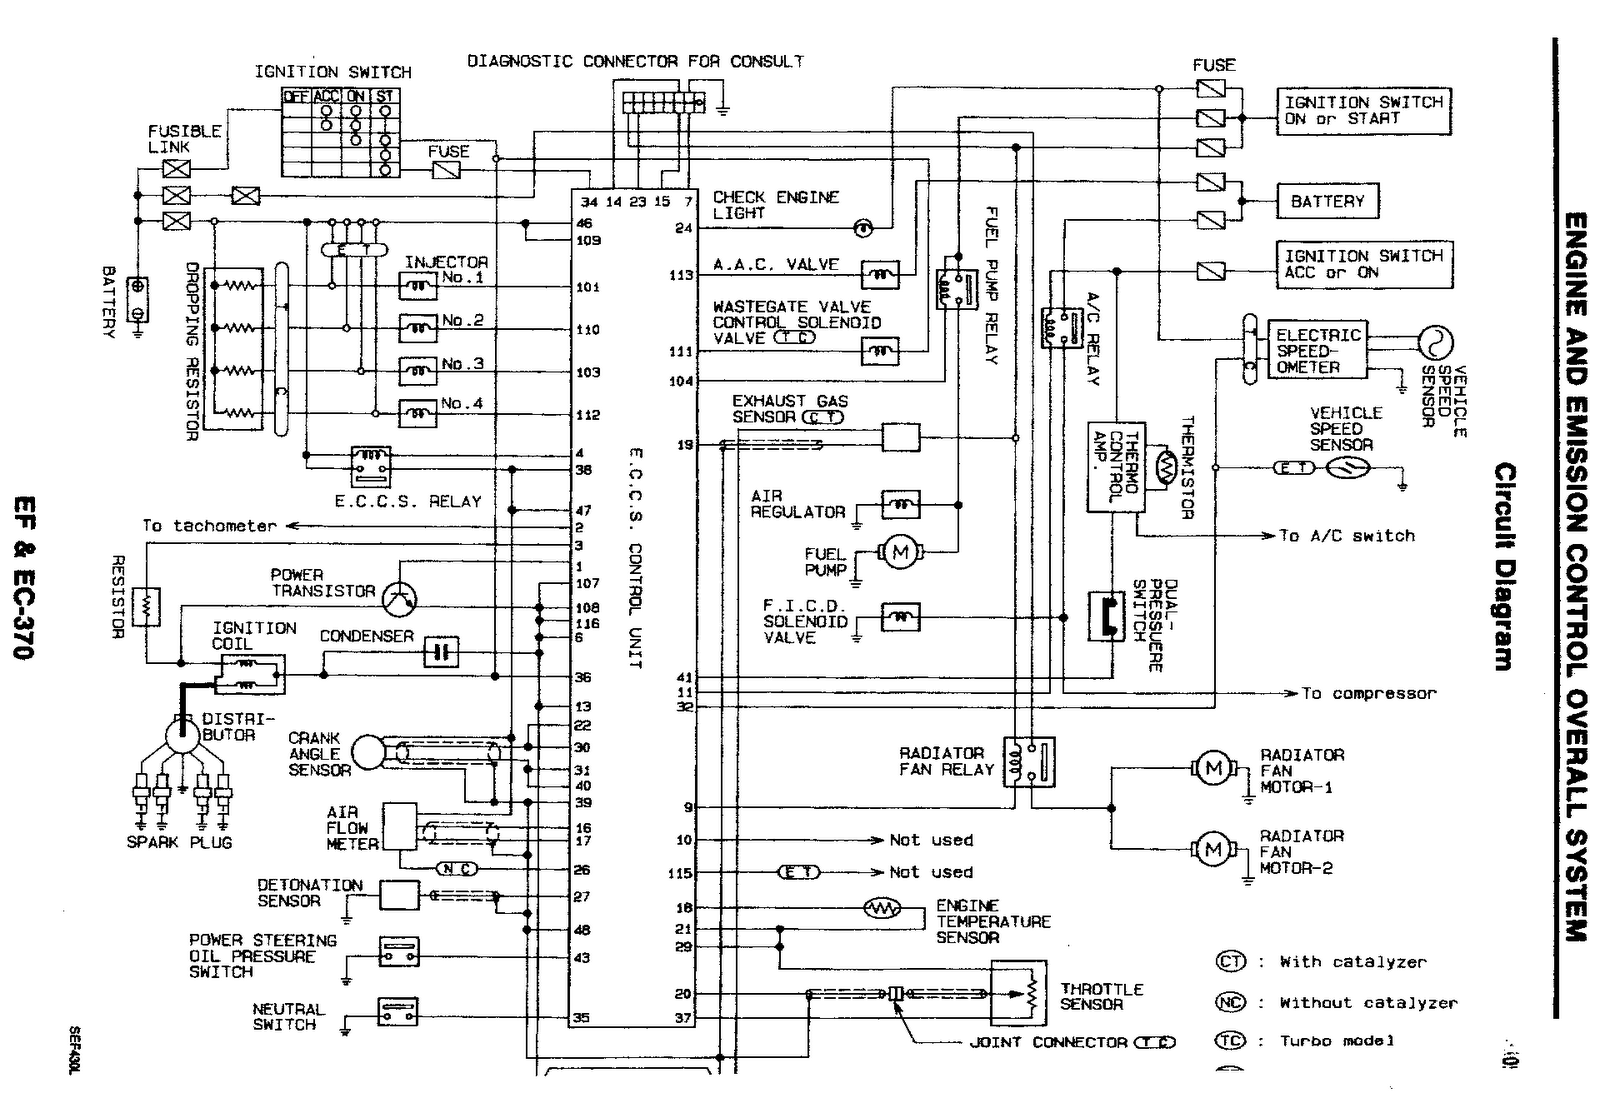 2003 audi all road engine diagram wiring diagram detailed Audi S4 Engine Bay Parts Diagram 2003 audi tt engine diagram wiring diagrams audi all road 2003 2 4l 2003 audi all road engine diagram